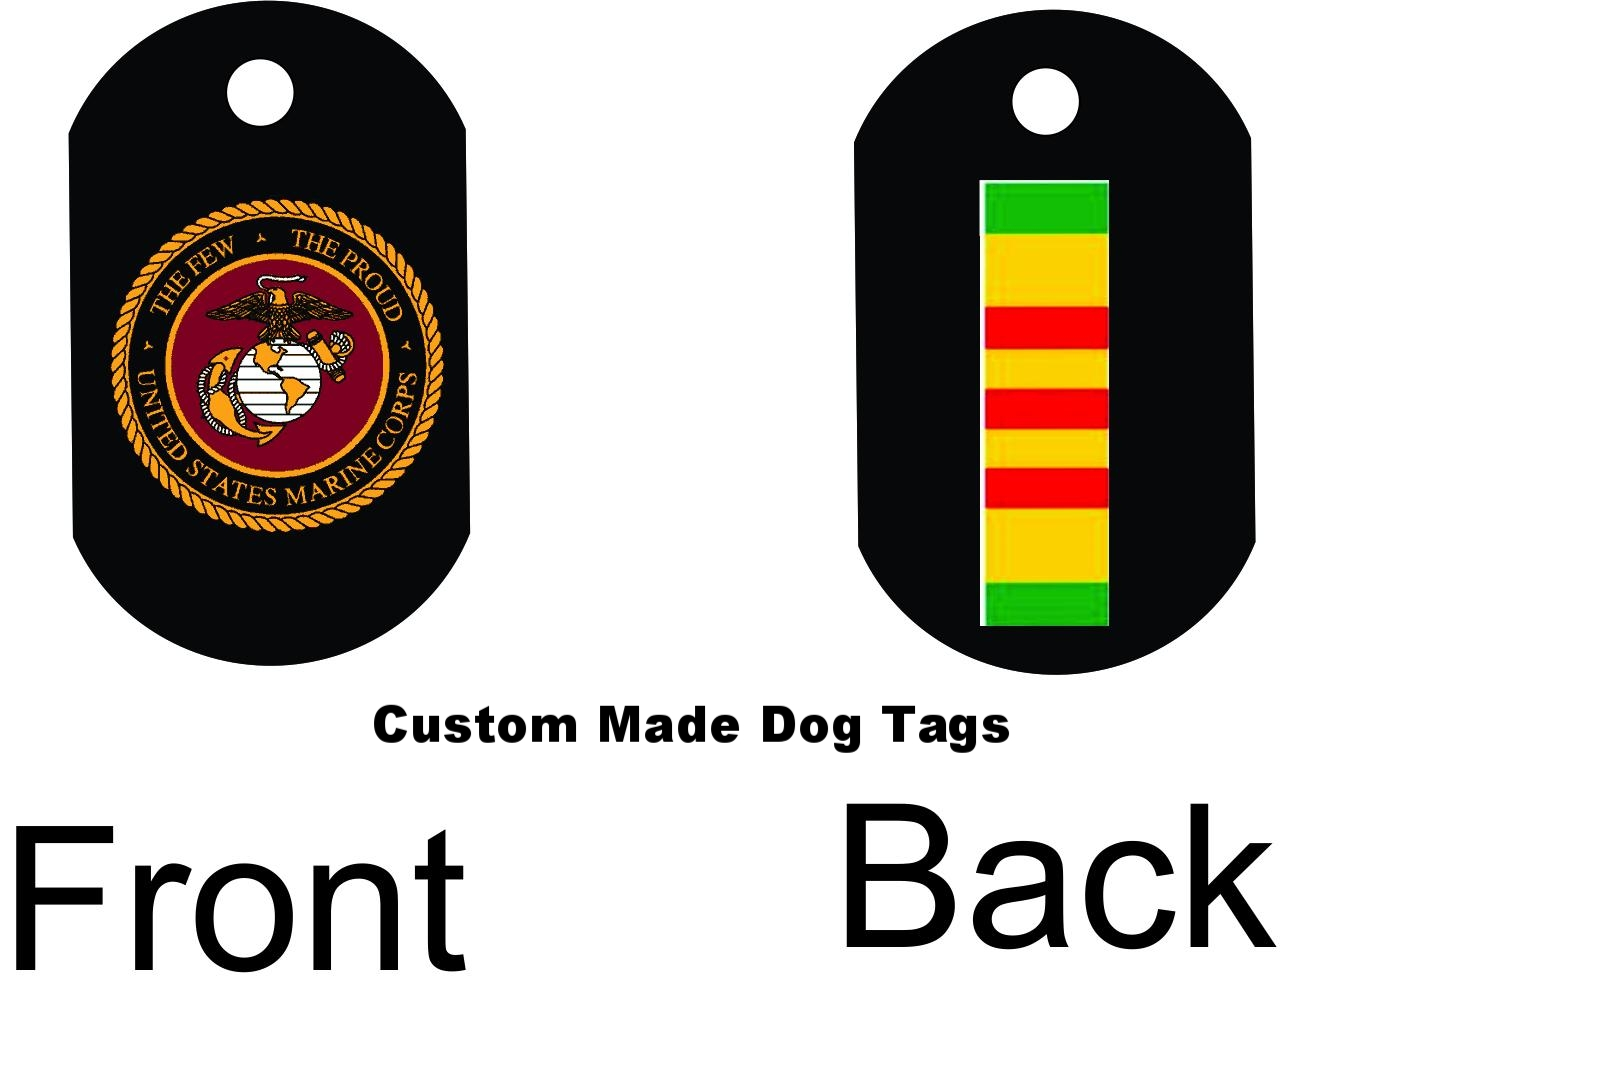 marine black dog tag (2017_04_28 13_23_57 UTC).jpg